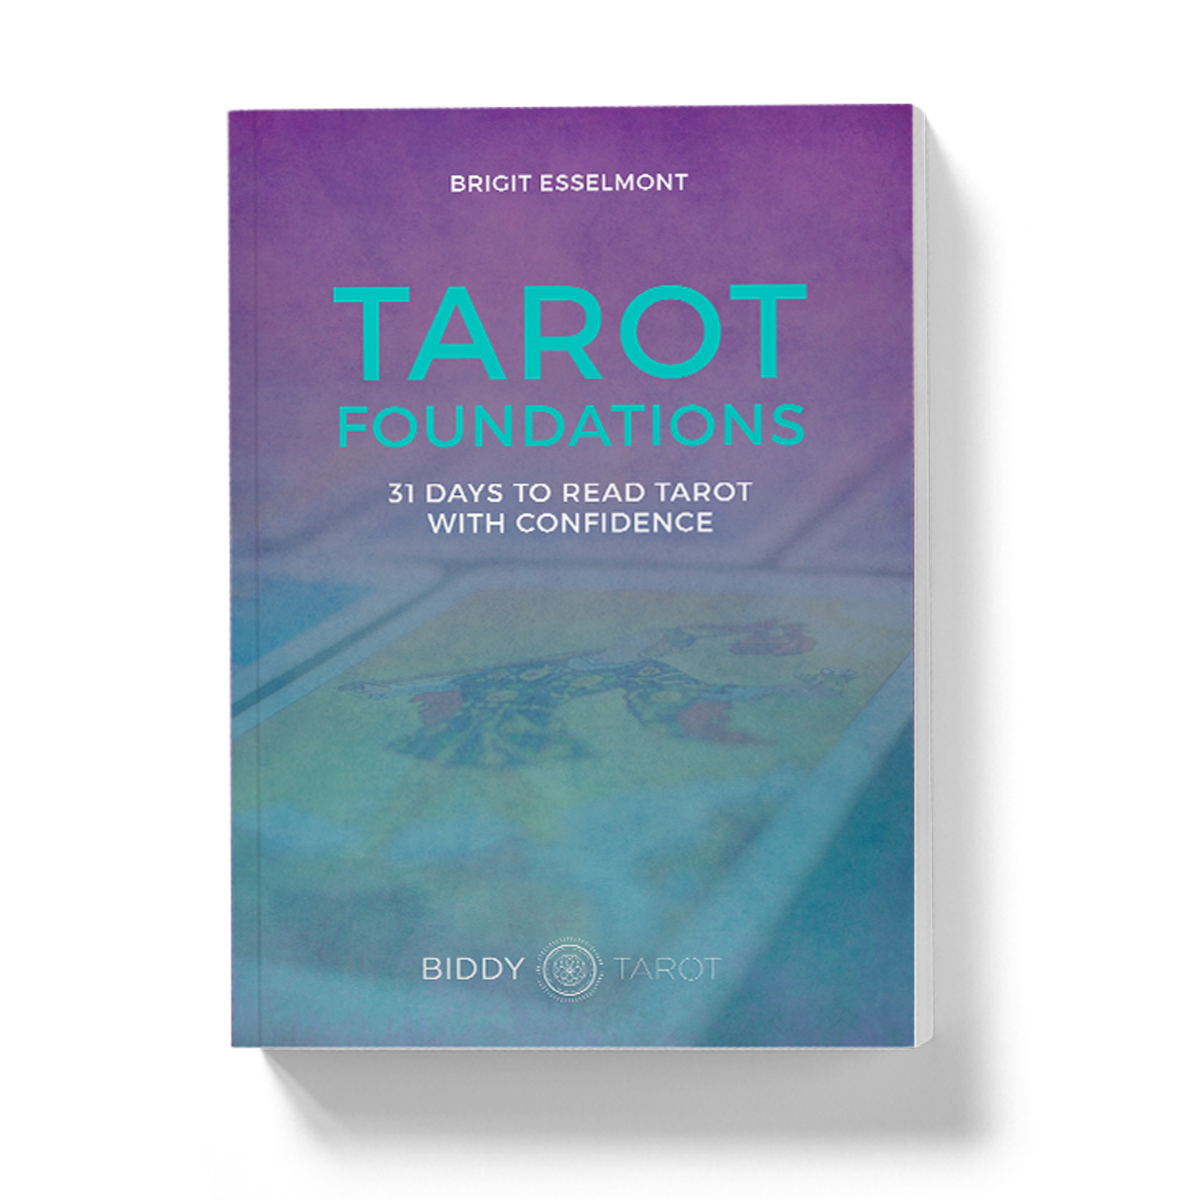 Online Tarot Courses, Books and Guides | Biddy Tarot